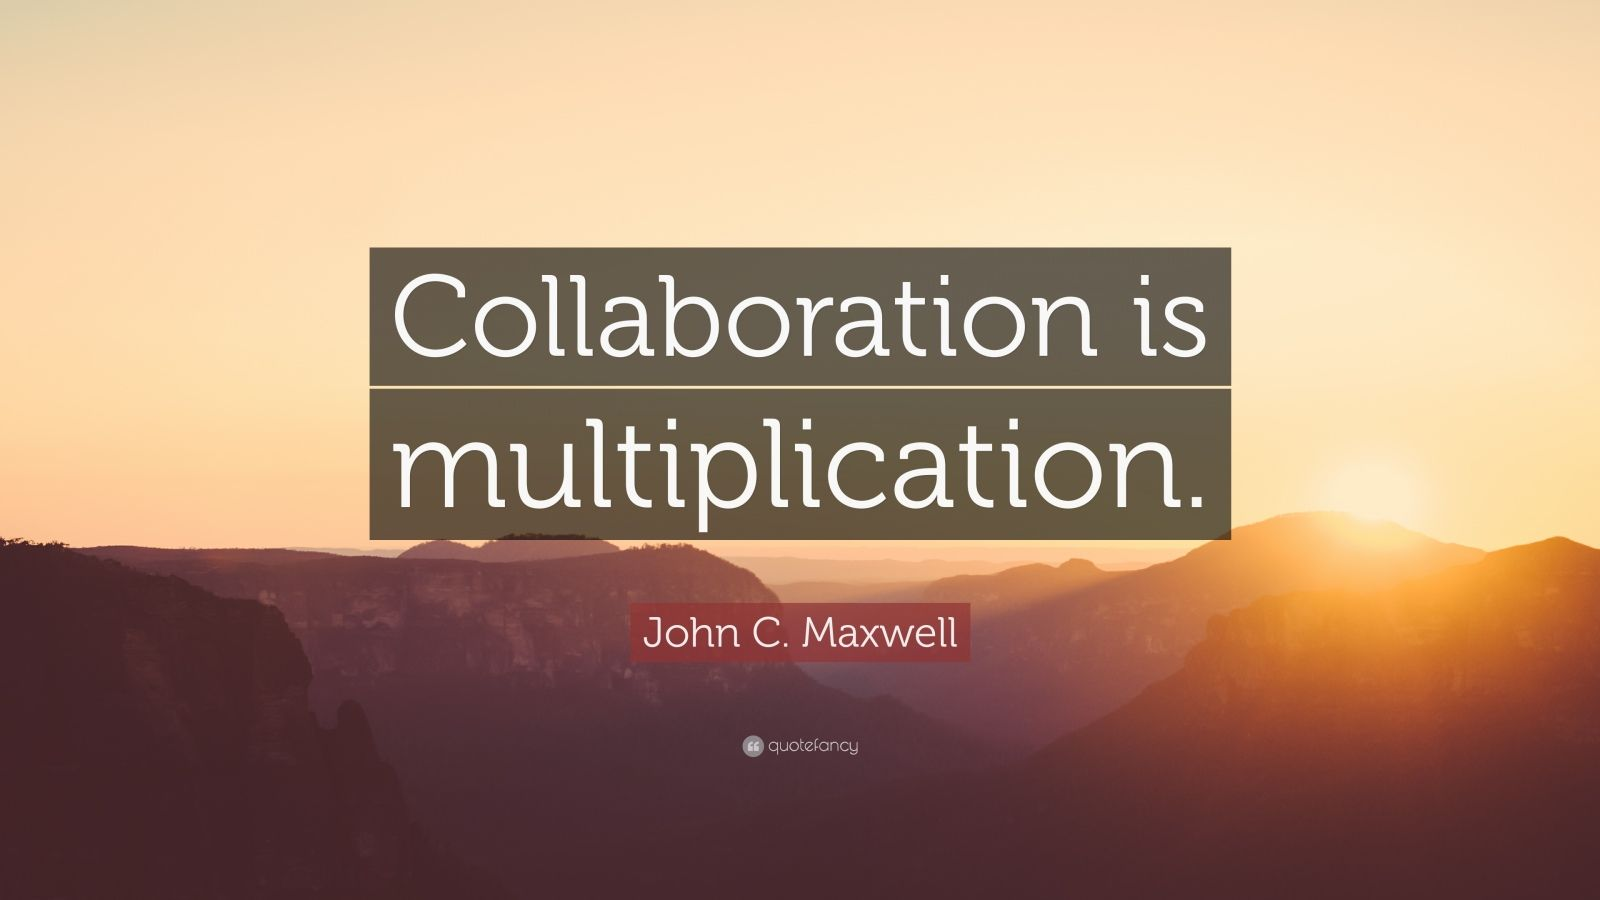 Beautiful Wallpapers With Inspirational Quotes John C Maxwell Quote Collaboration Is Multiplication